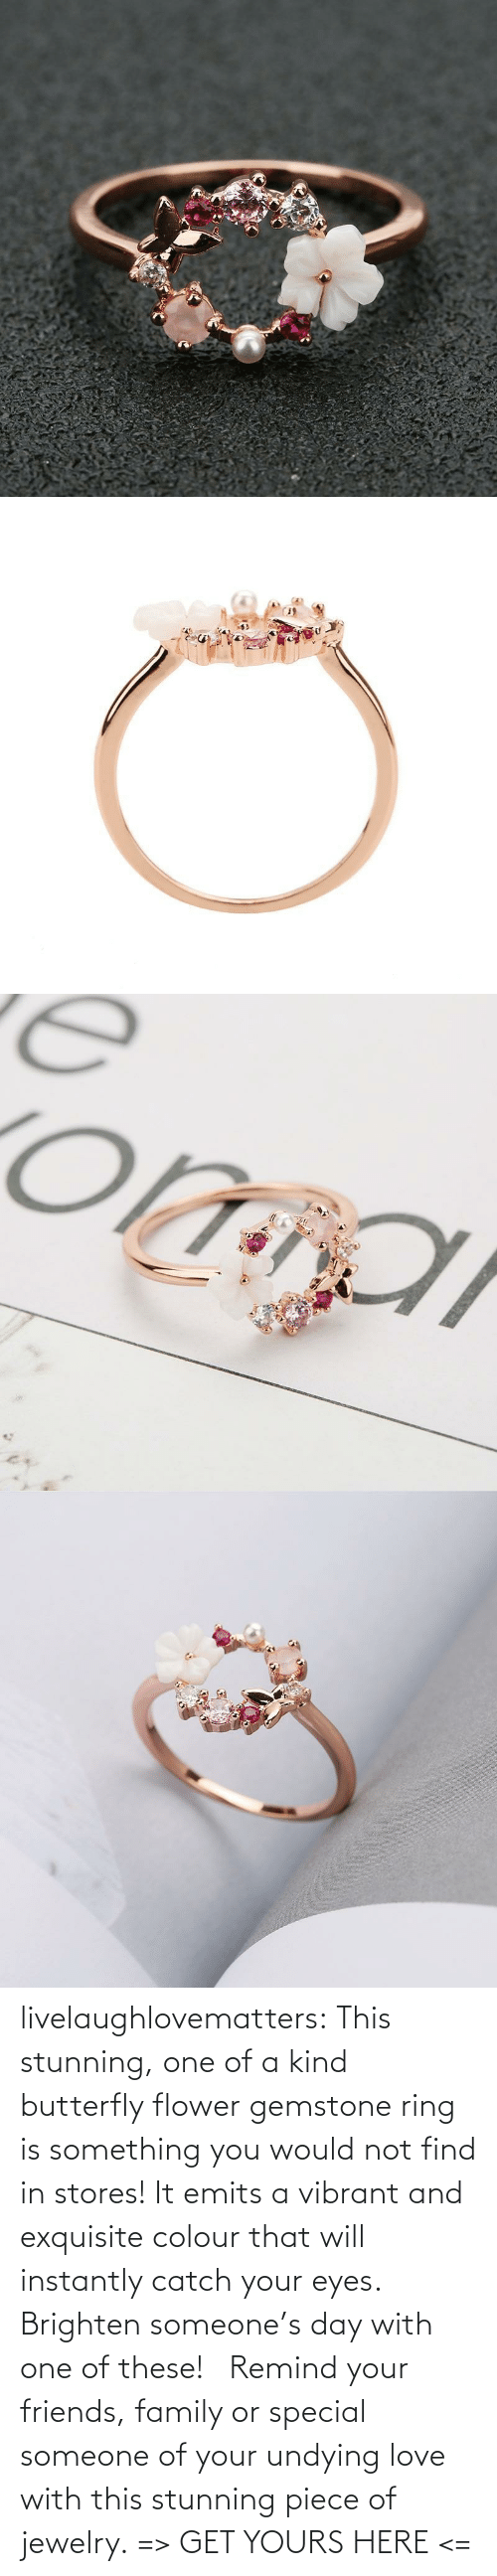 That Will: livelaughlovematters:  This stunning, one of a kind butterfly flower gemstone ring is something you would not find in stores! It emits a vibrant and exquisite colour that will instantly catch your eyes. Brighten someone's day with one of these!  Remind your friends, family or special someone of your undying love with this stunning piece of jewelry. => GET YOURS HERE <=